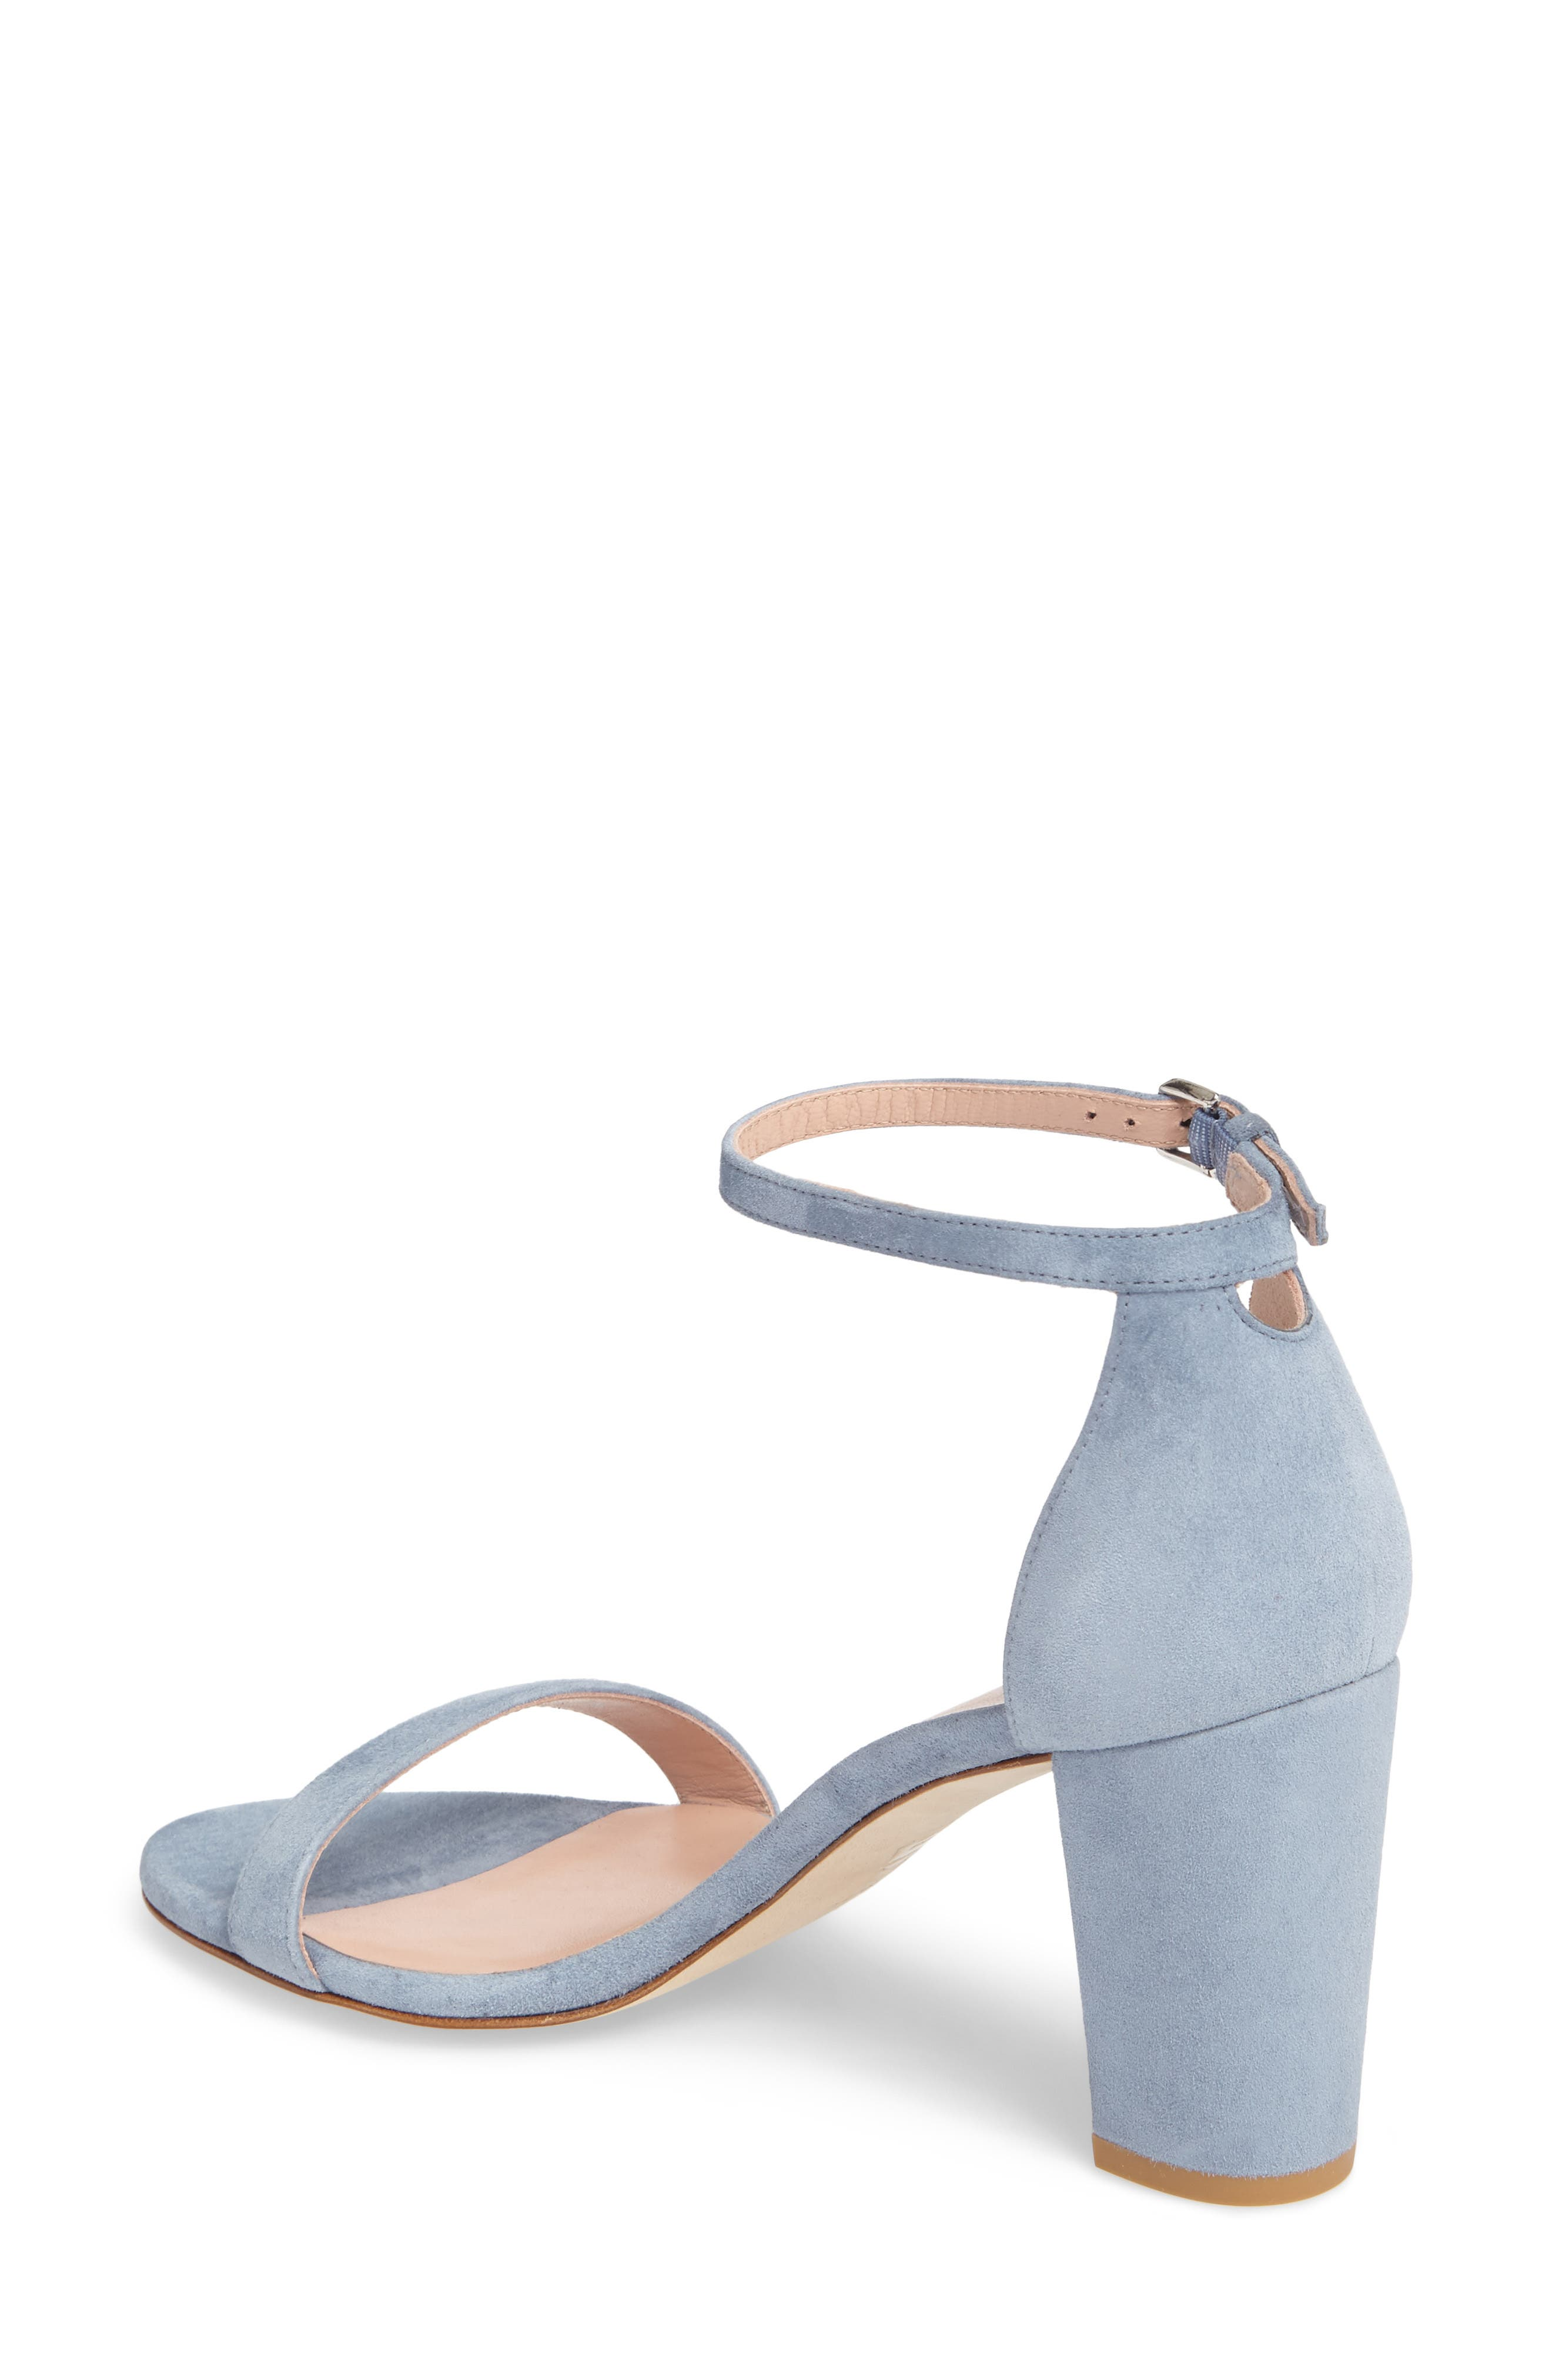 NearlyNude Ankle Strap Sandal,                             Alternate thumbnail 33, color,